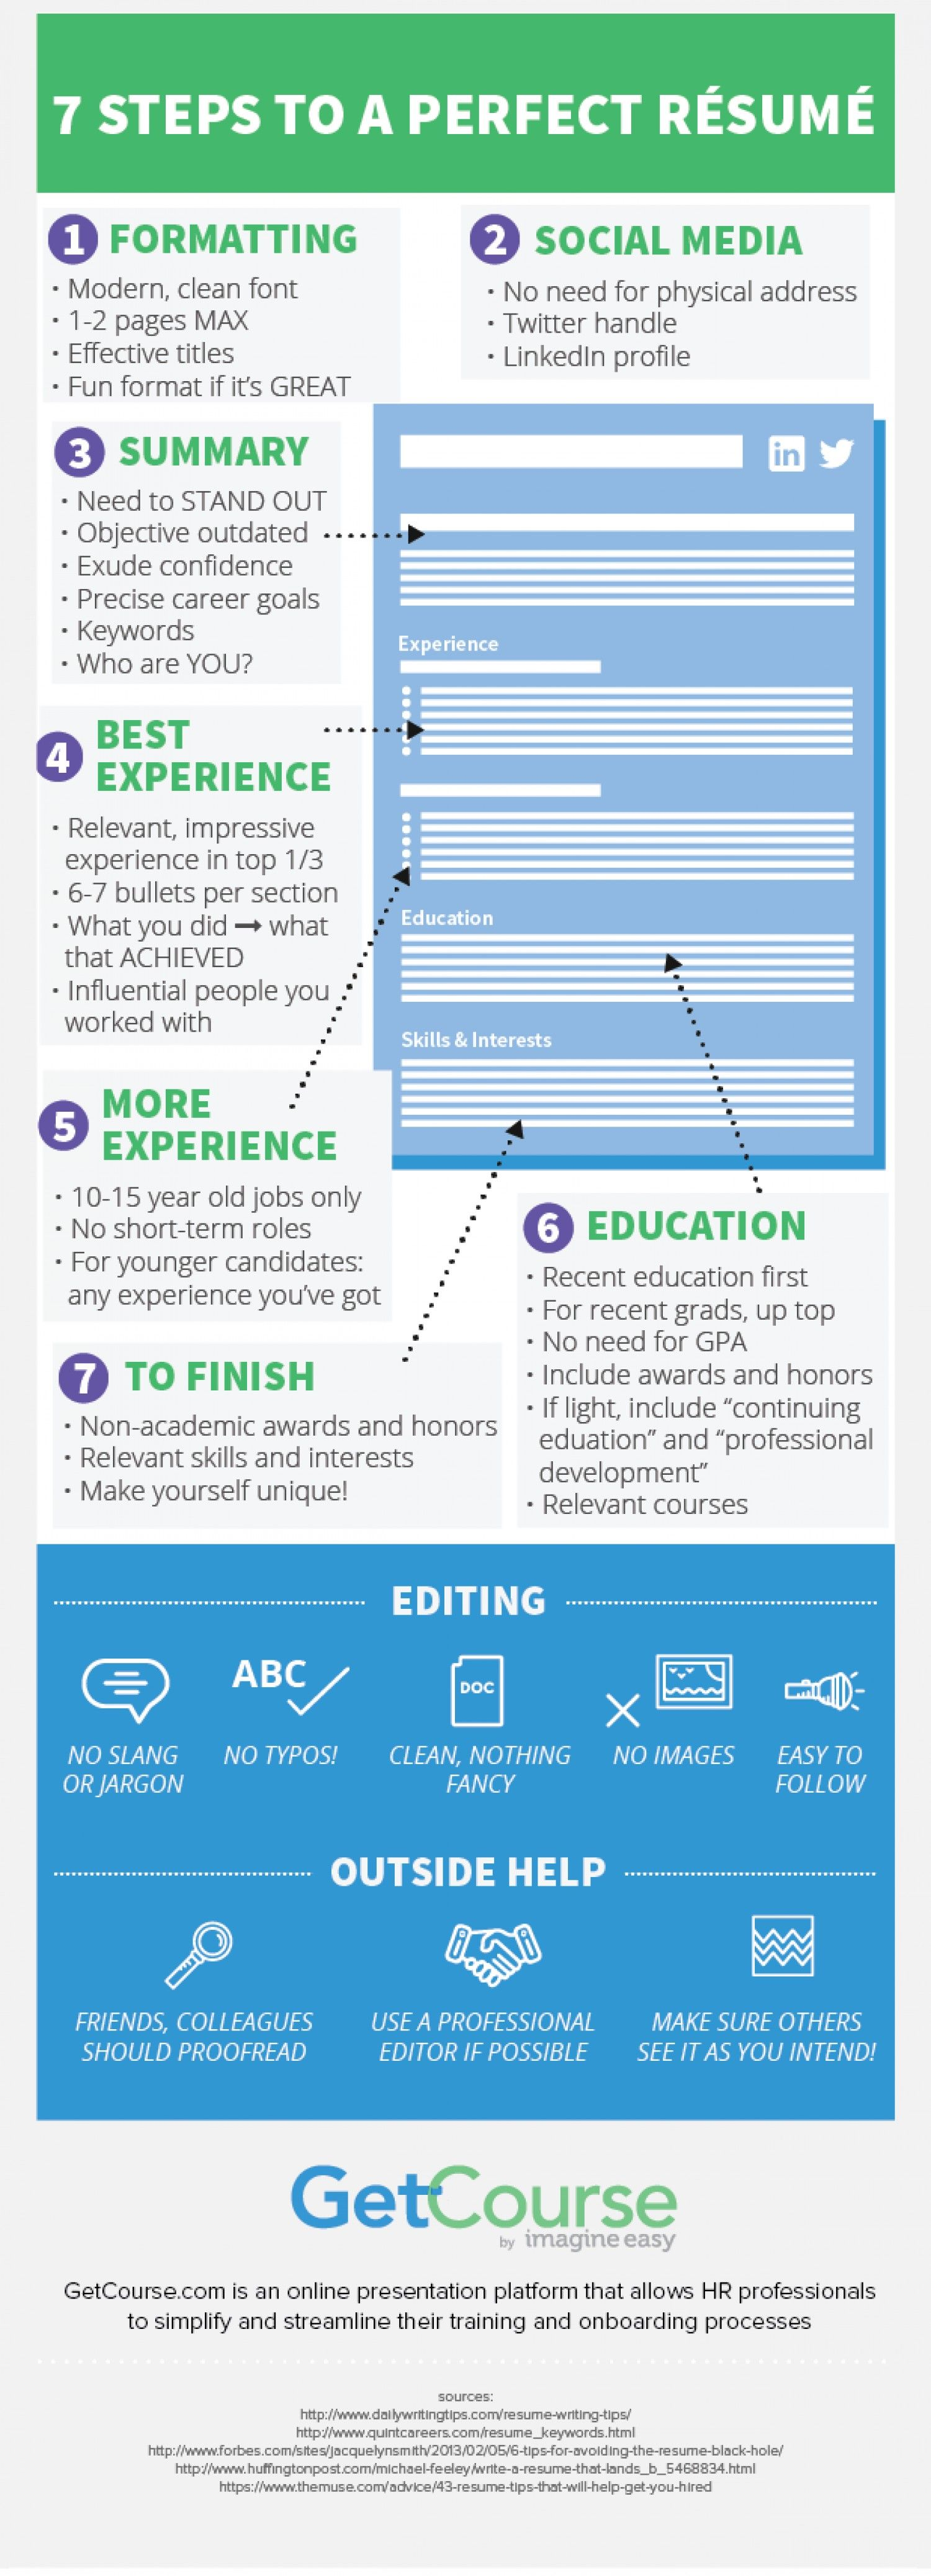 How To Make A Perfect Resume Step By Step Delectable 7 Steps To A Perfect #resume #careers  Career Girl  Pinterest .